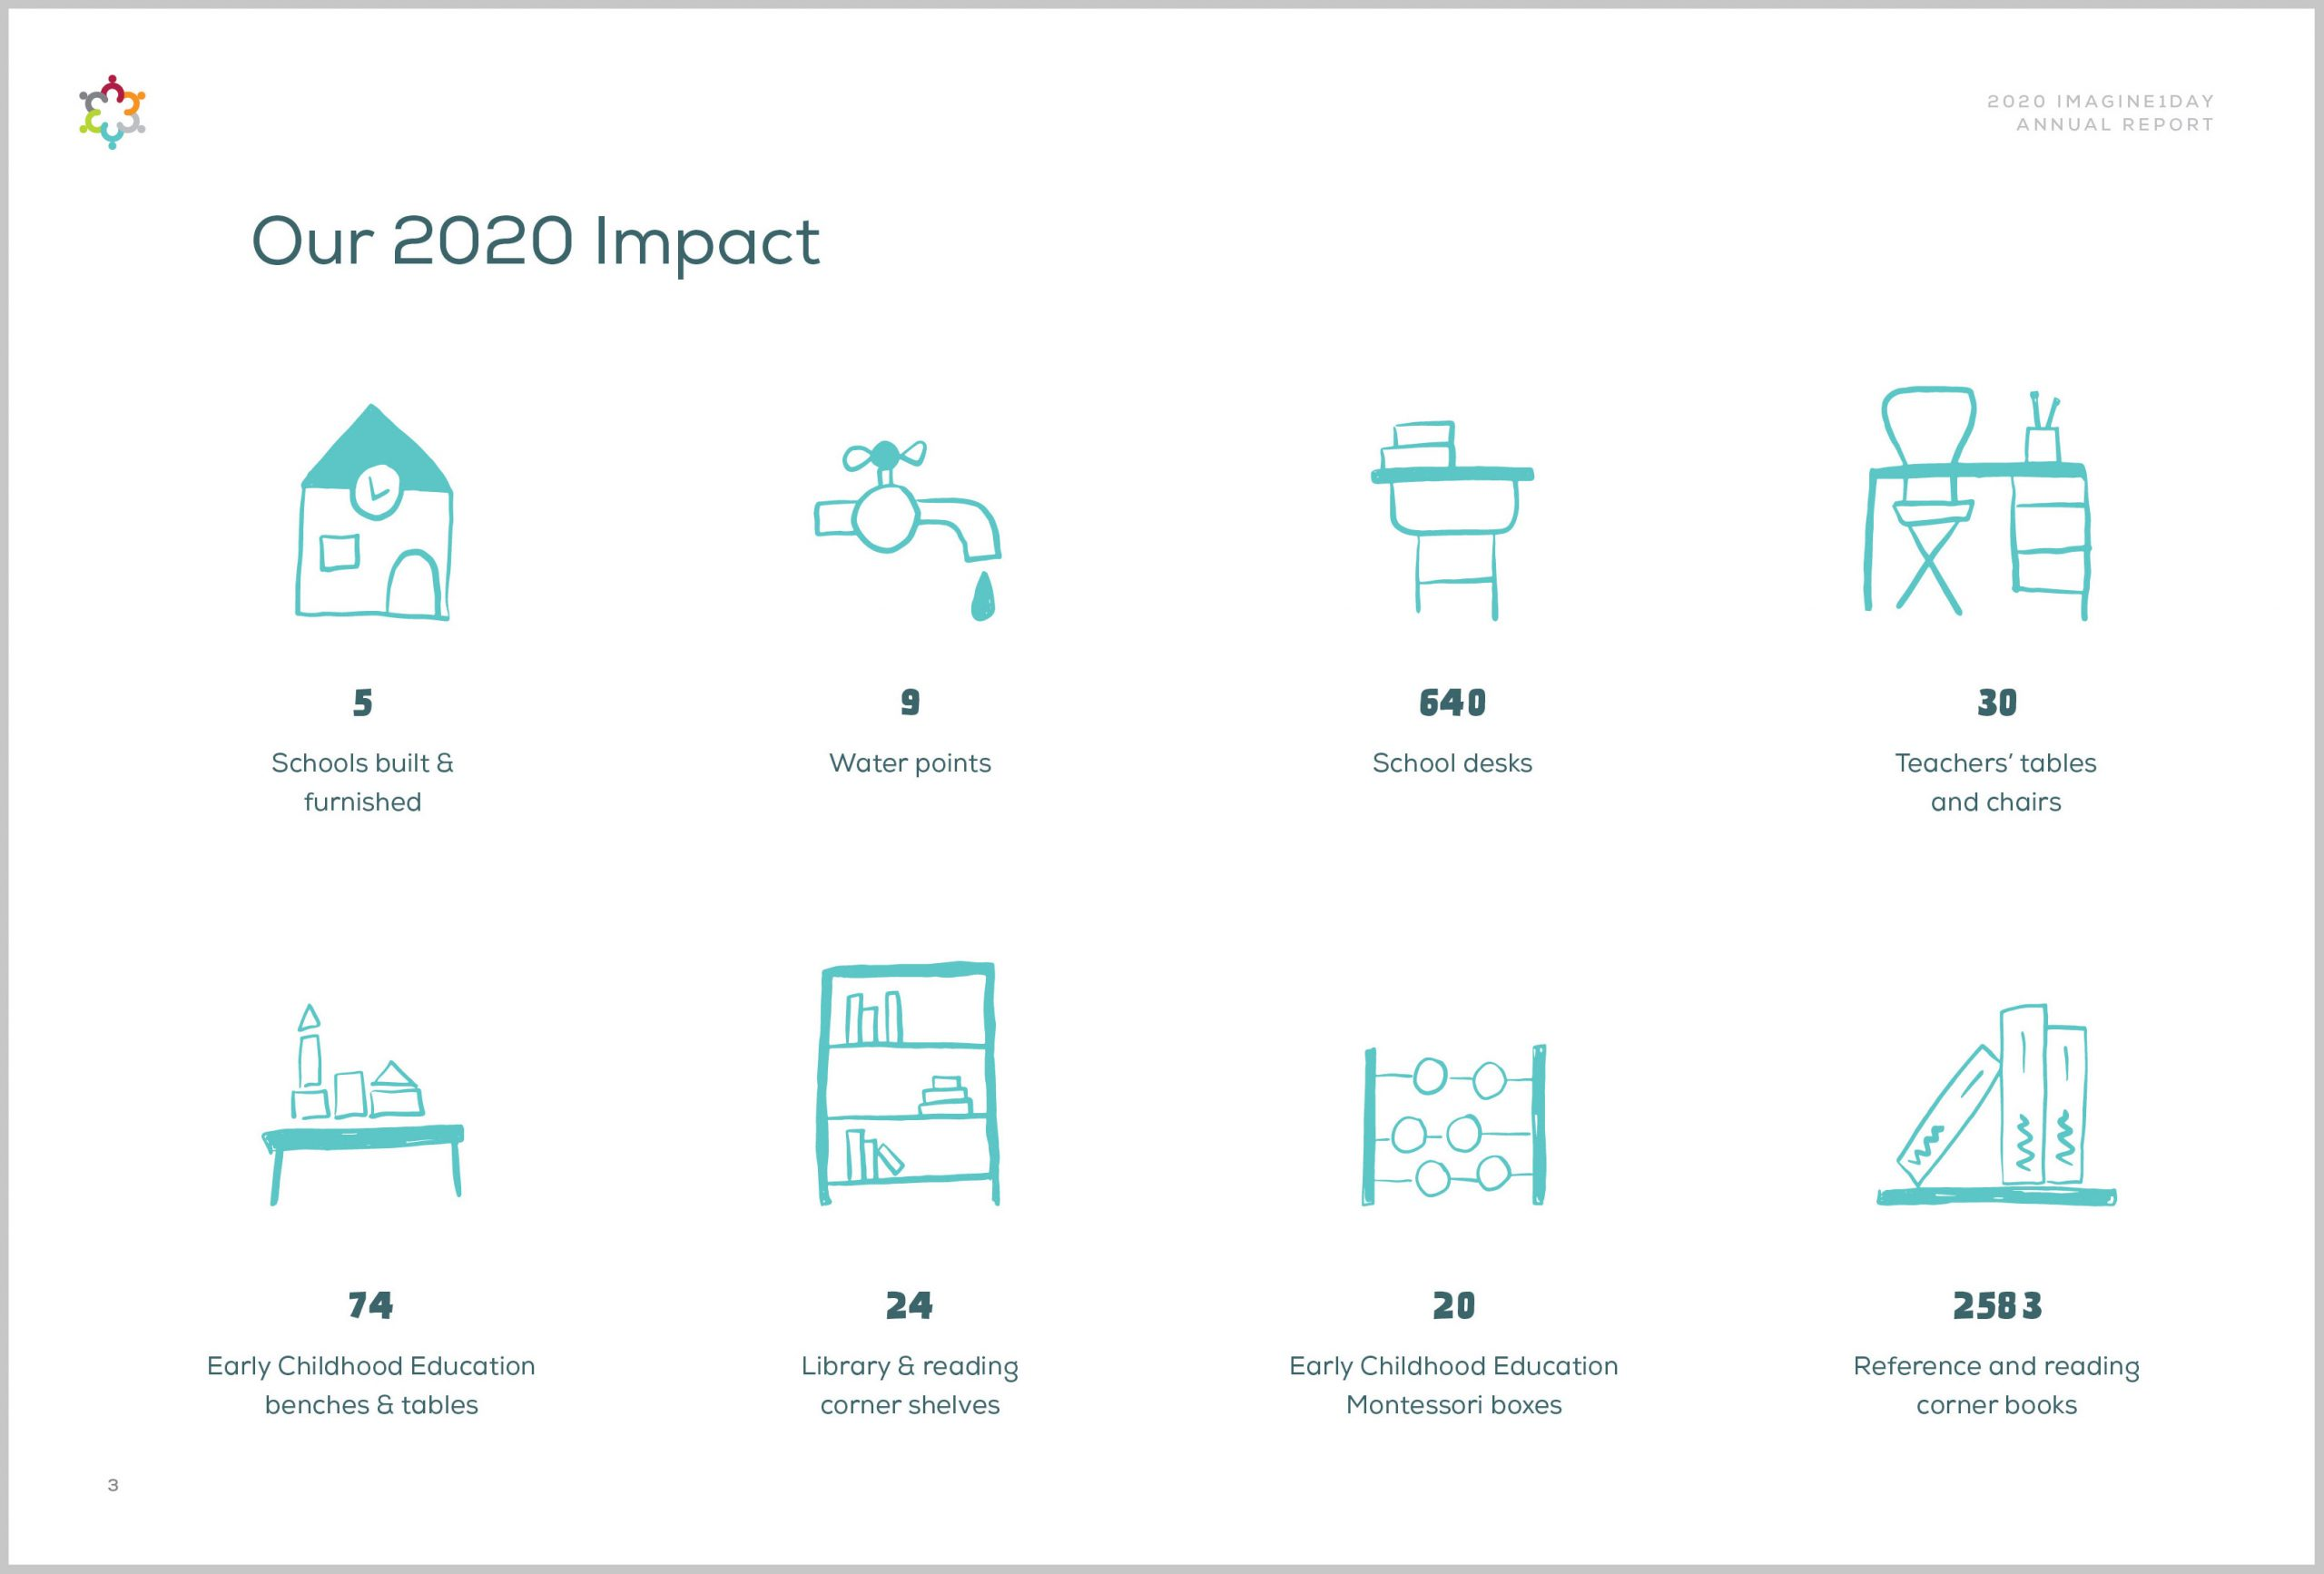 imagine1day digital Annual Report, 2020 Impact Stats with custom illustrated icons   www.alicia-carvalho.com